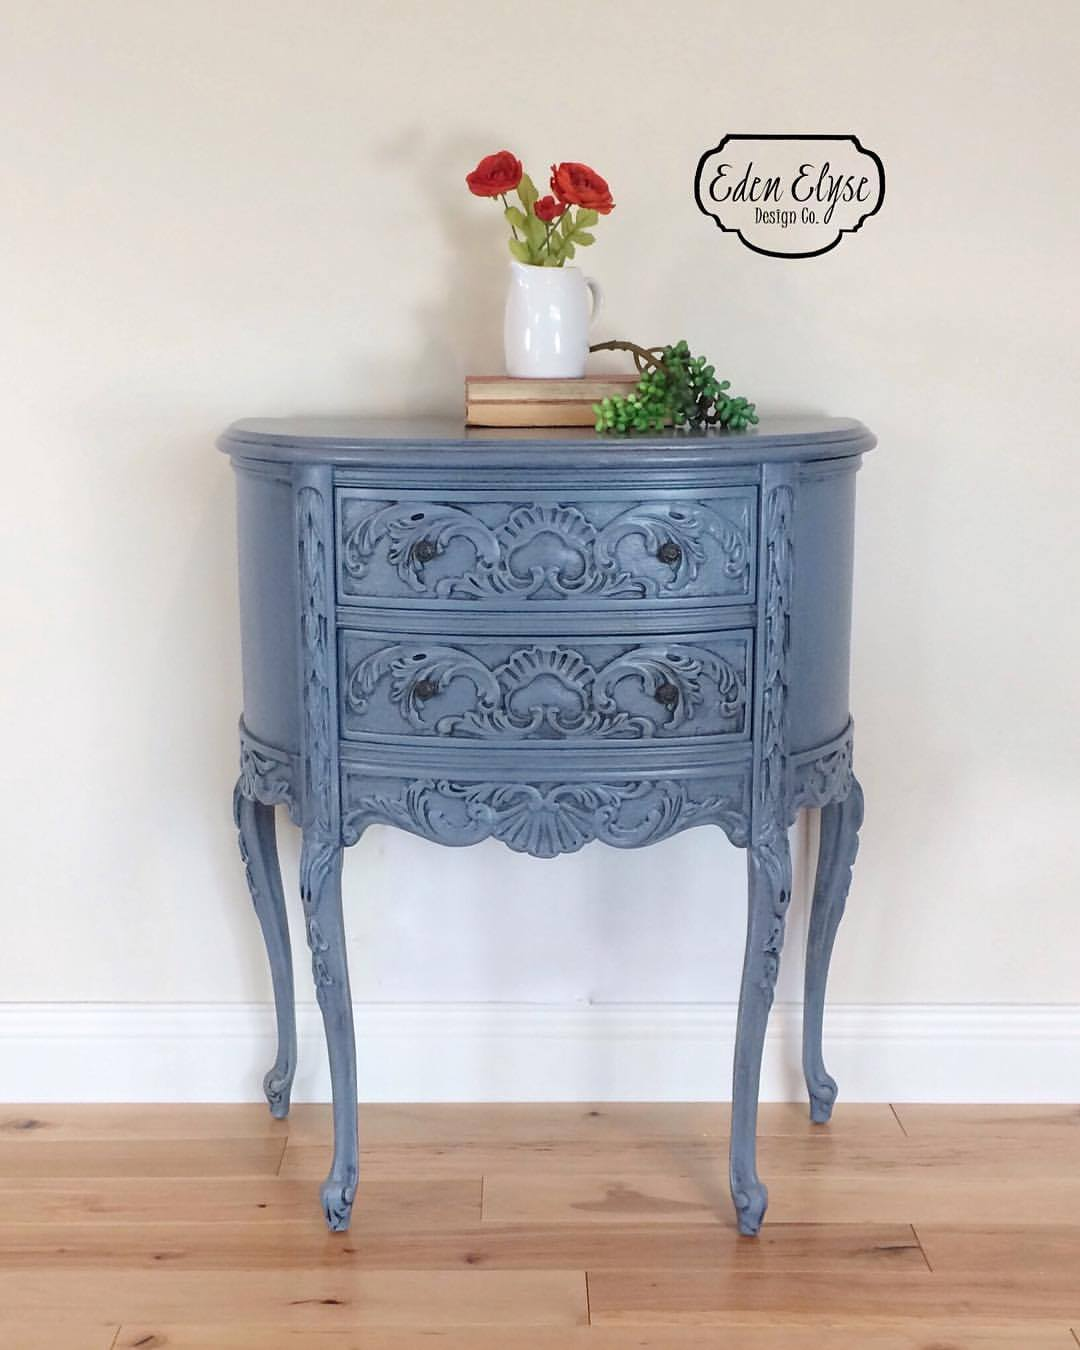 stillwater blue accent table general finishes design center scd chalk style paint erin eden elyse pitch black glaze effects high performance topcoat painted tables chests bent